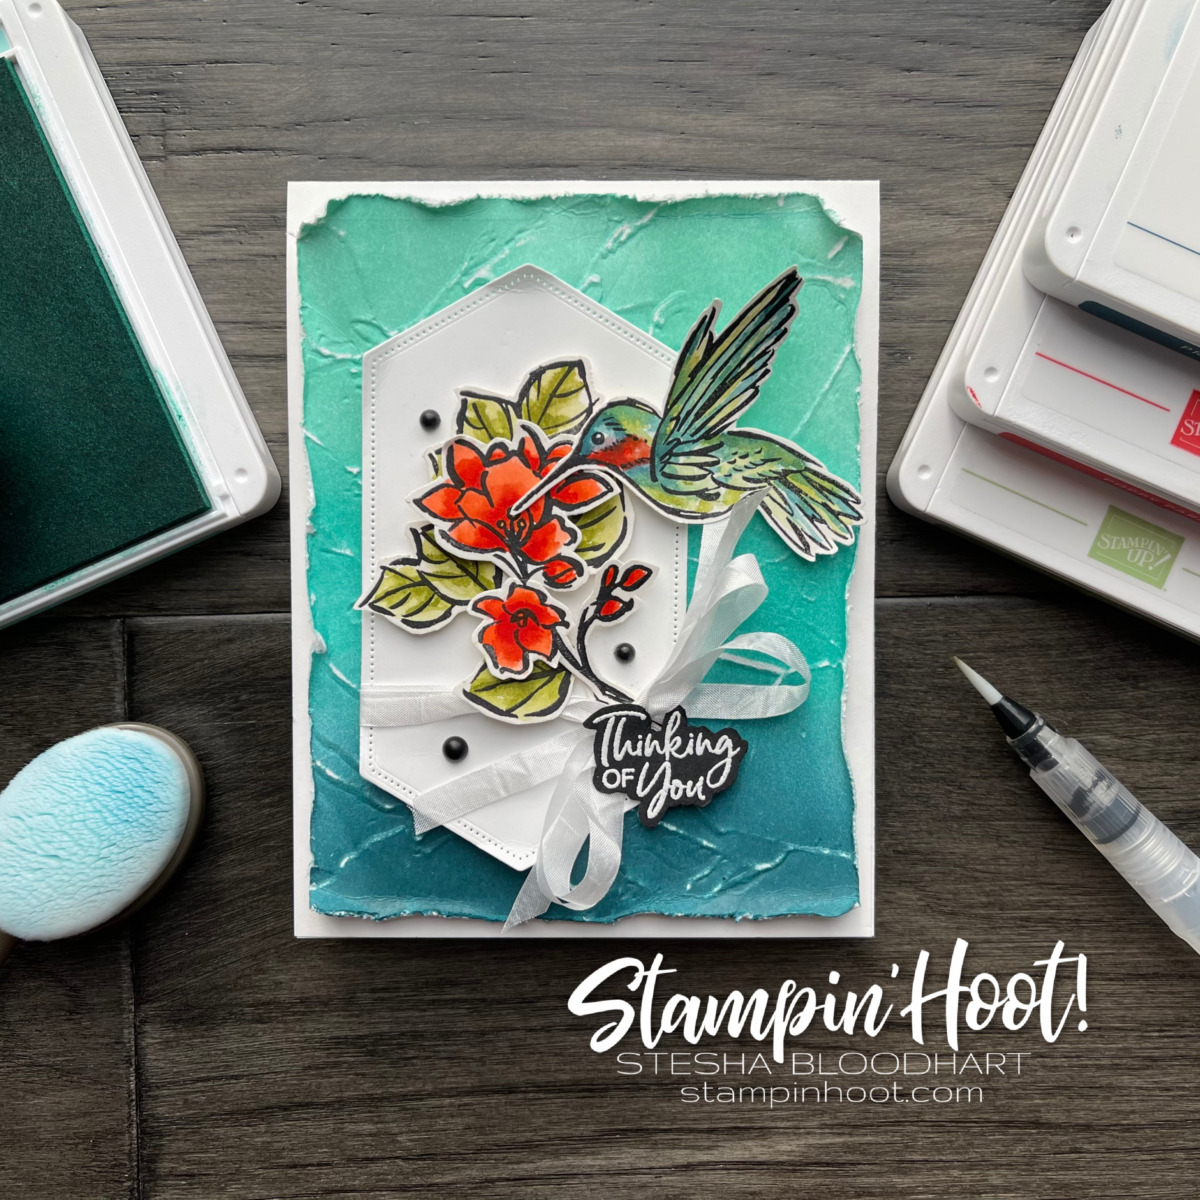 A Touch of Ink Stamp Set from Stampin' Up! Free during Sale-a-Bration. Card created by Stesha Bloodhart, Stampin' Hoot!